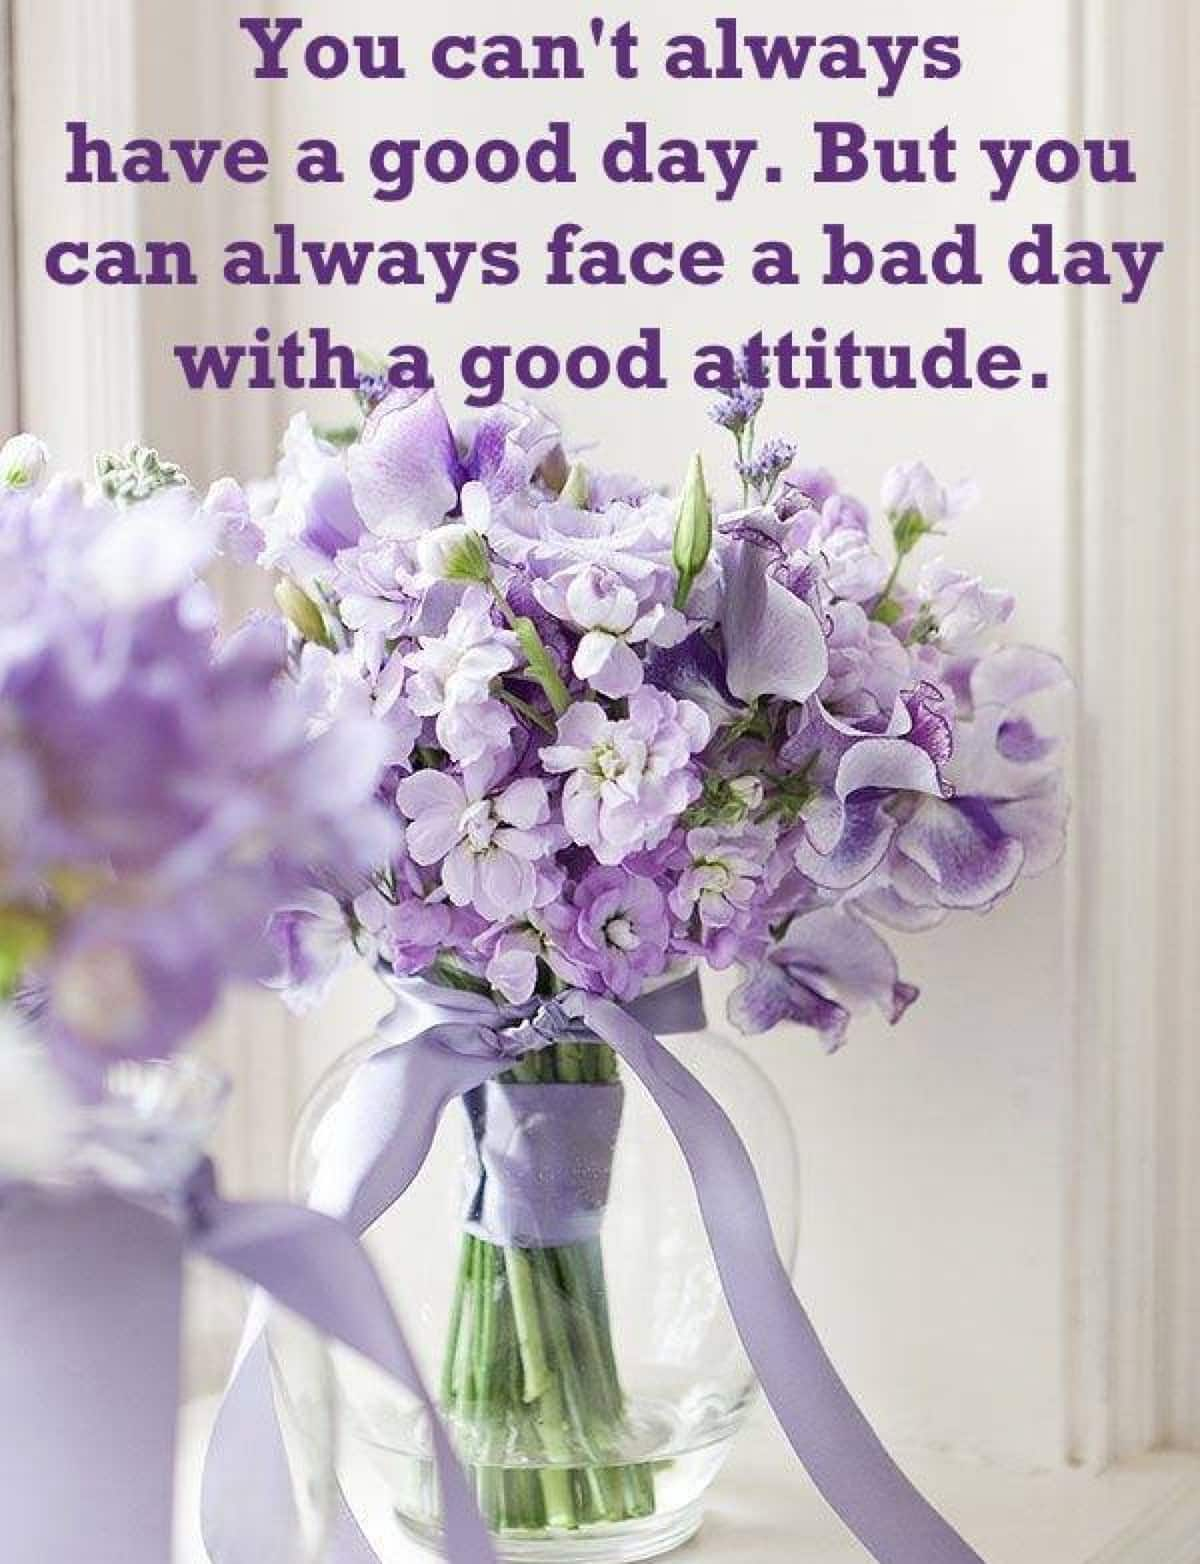 positive quotes on attitude positive quotes short positive quotes monday